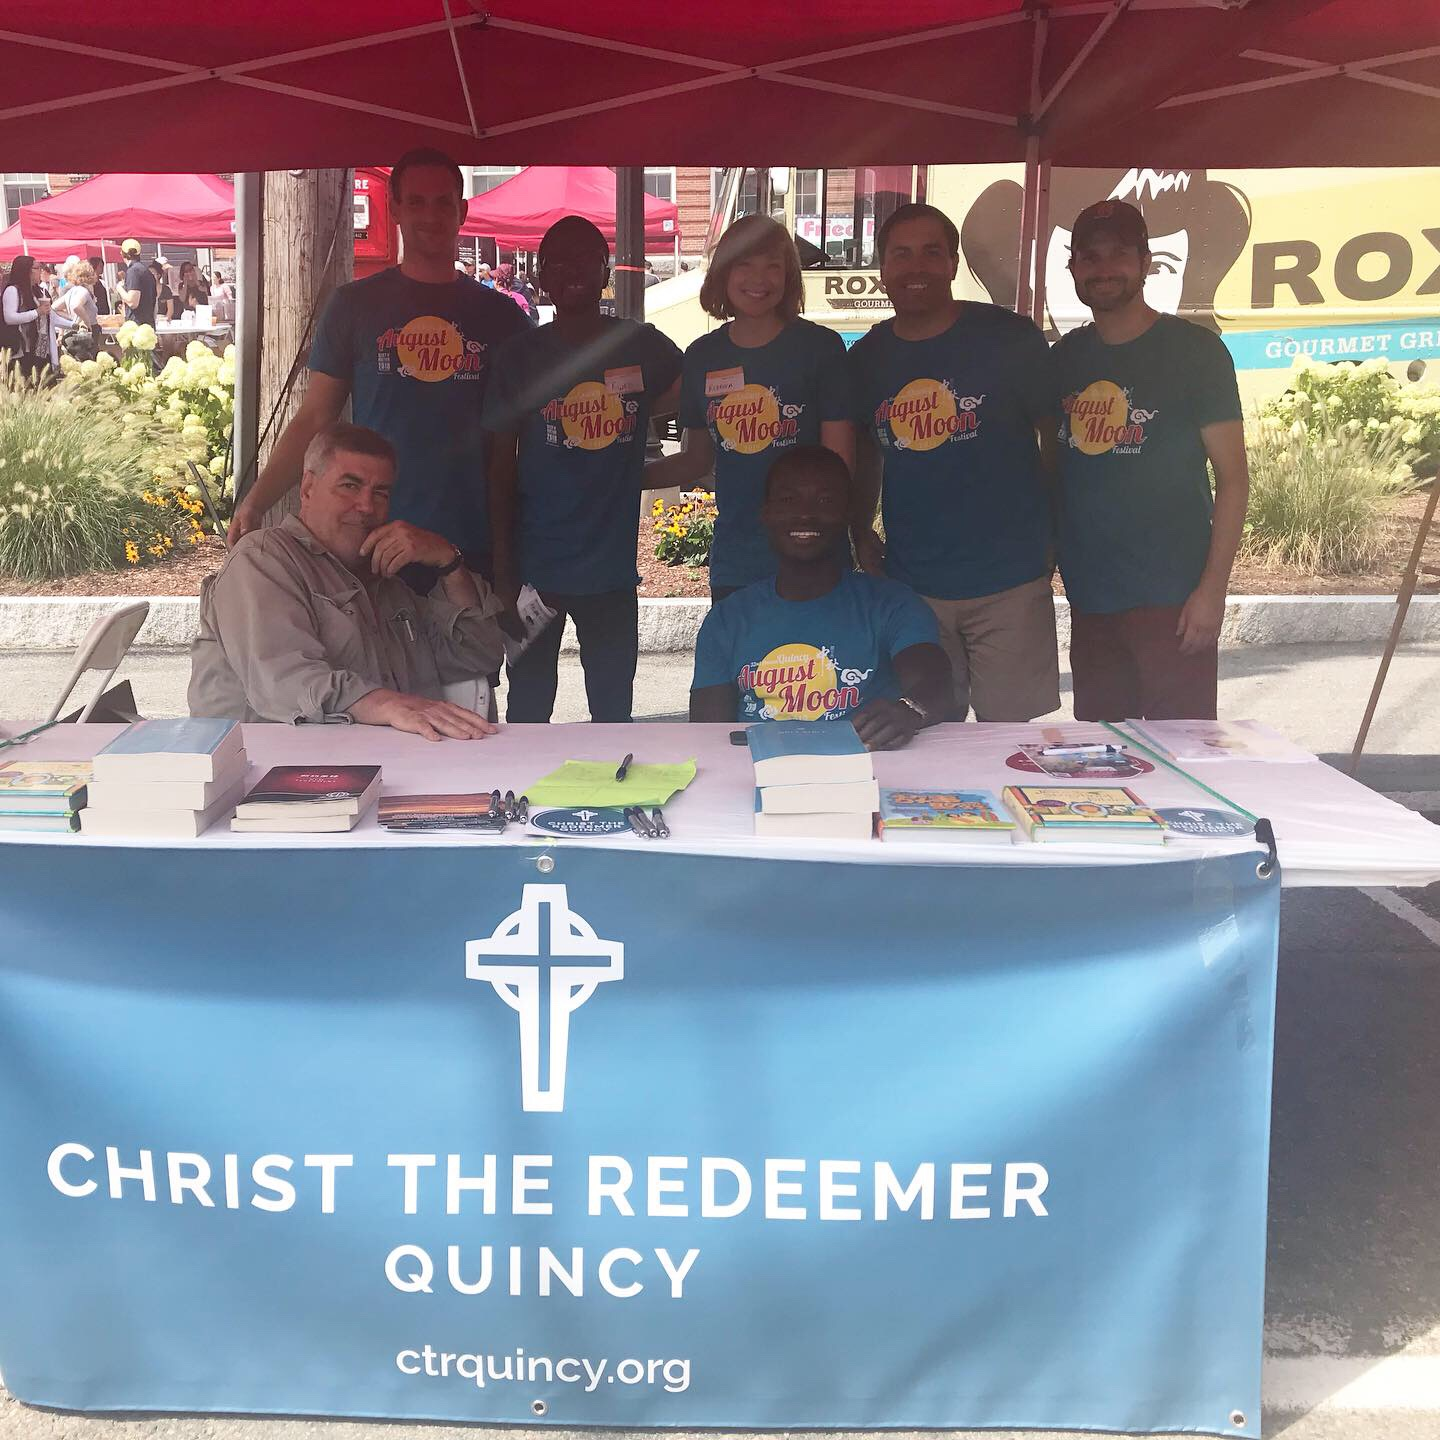 Christ the Redeemer Quincy volunteered to help set up the August Moon Festival in Quincy, then hosted a booth to give away Bibles and Jesus Storybook Bibles in English and Chinese, as well as pens and flyers about the church